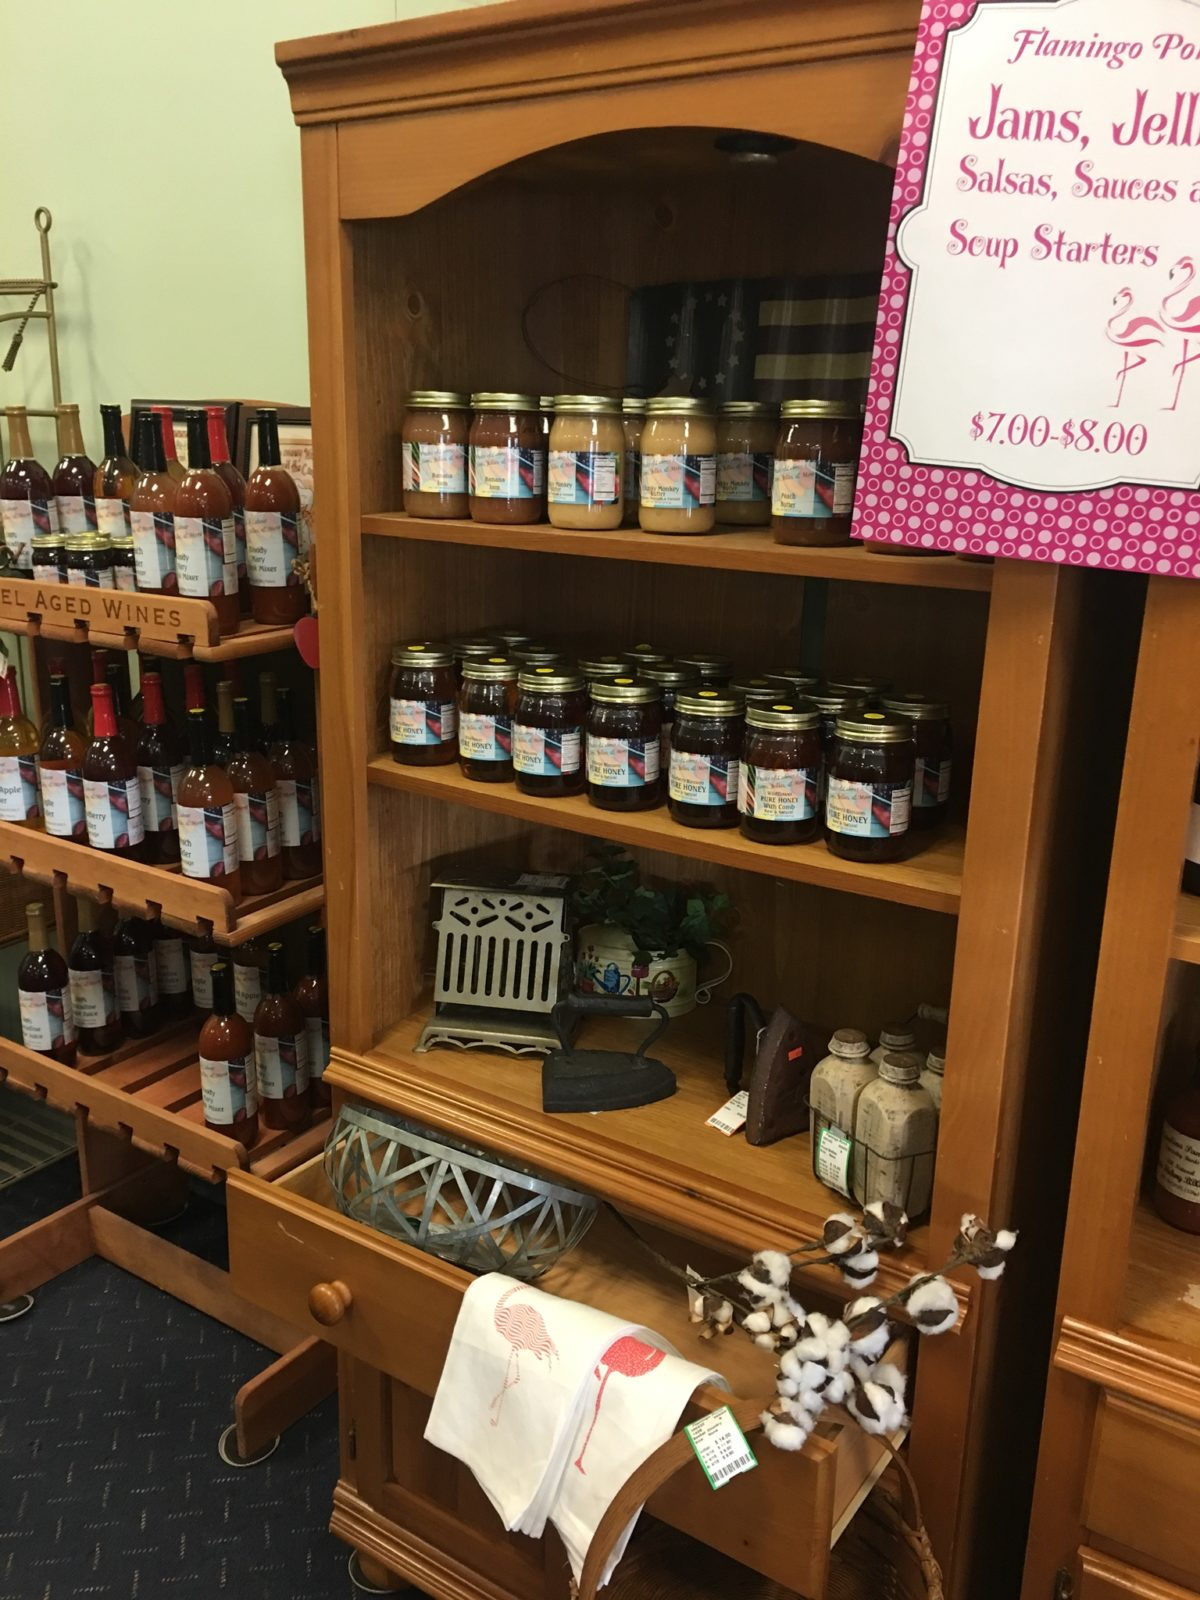 Jams, Jellies and Salsa • Products from local farm in North Carolina. Funky Monkey Butter spread, Traffic Jam, Toe Jam, Muscadine Preserves and many more! Add to that a line of Ciders, Blueberry Cider, Peach Cider and BlackBerry Cider.   Pineapple Salsa and others.